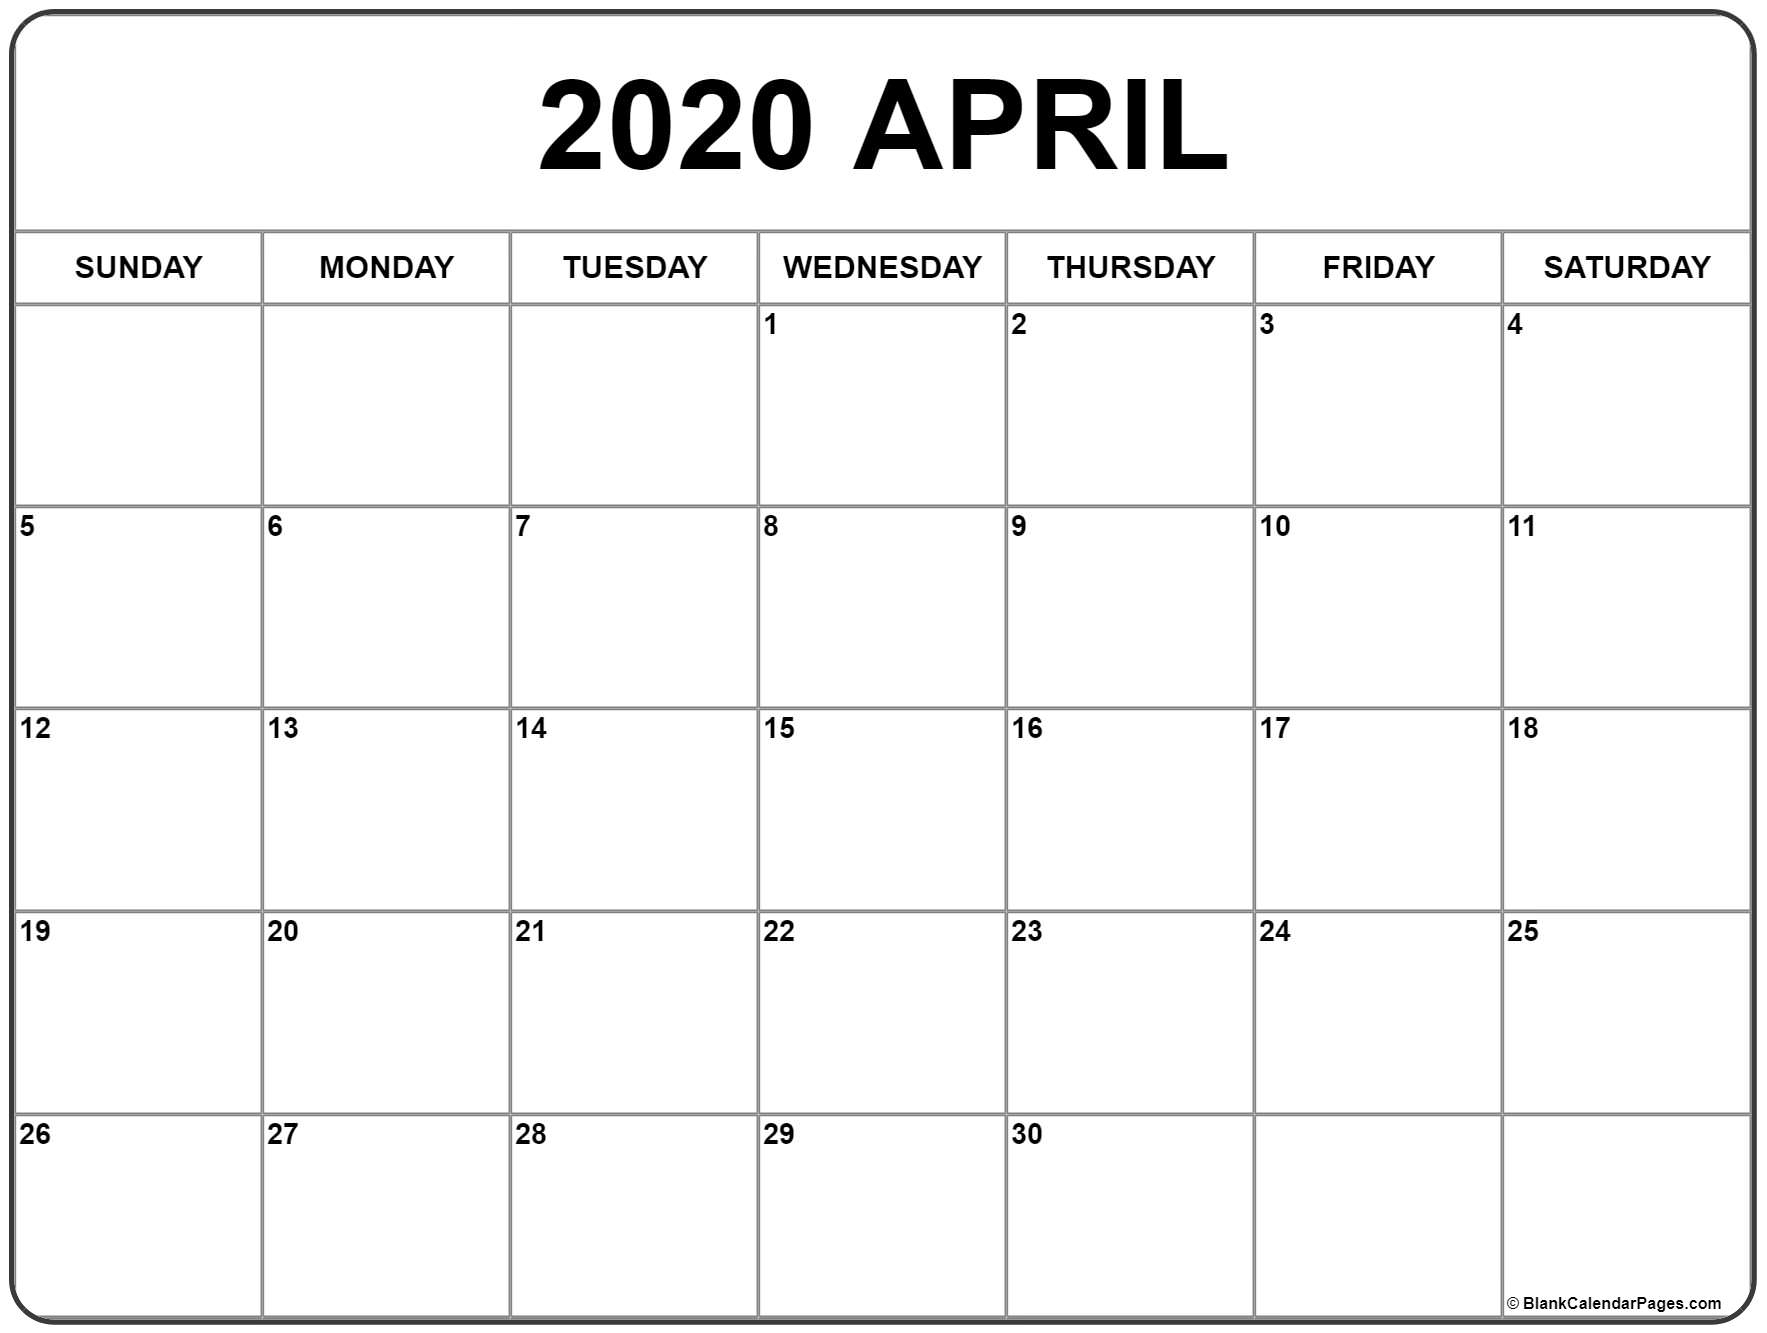 Free Printable Calendar April 2020 - Wpa.wpart.co